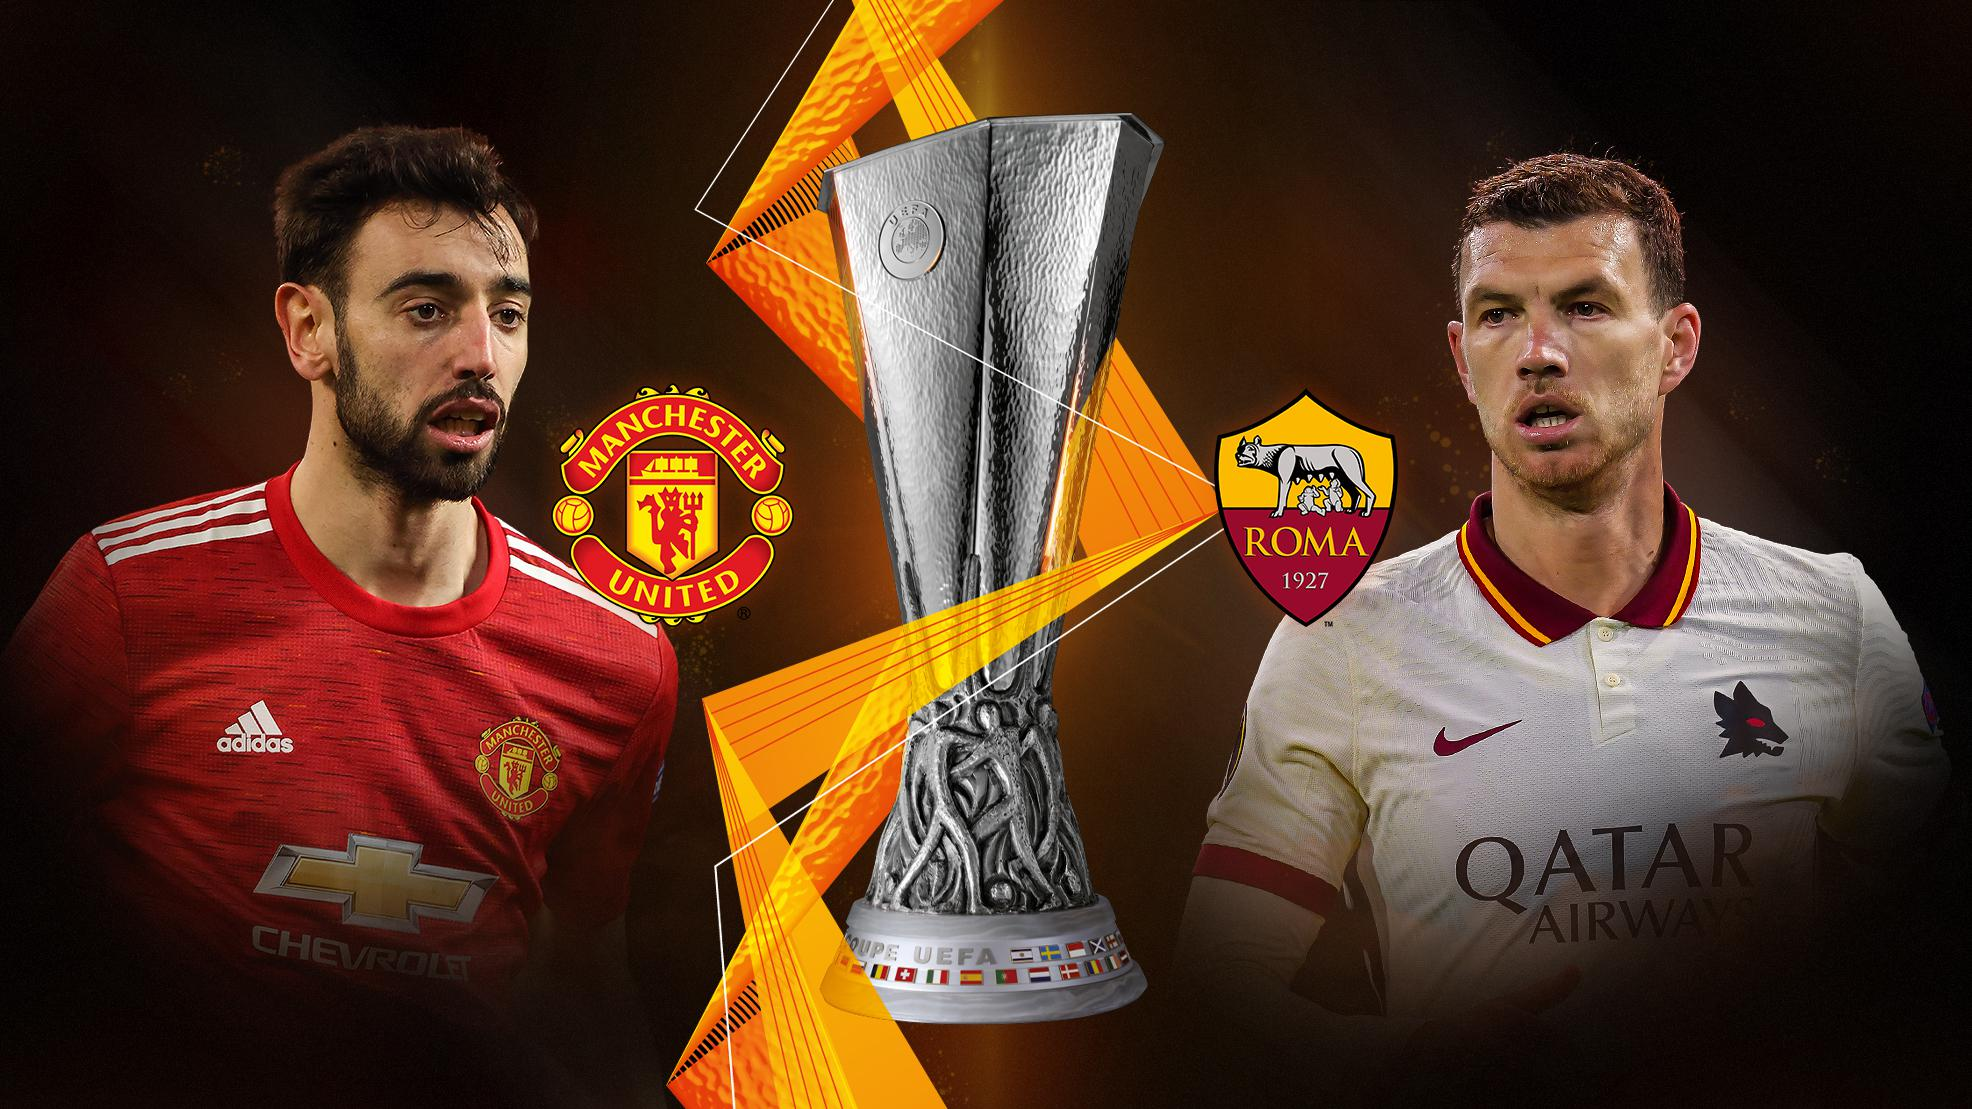 Manchester United vs Roma: Prediction, Lineups, Team News, Betting Tips & Match Previews